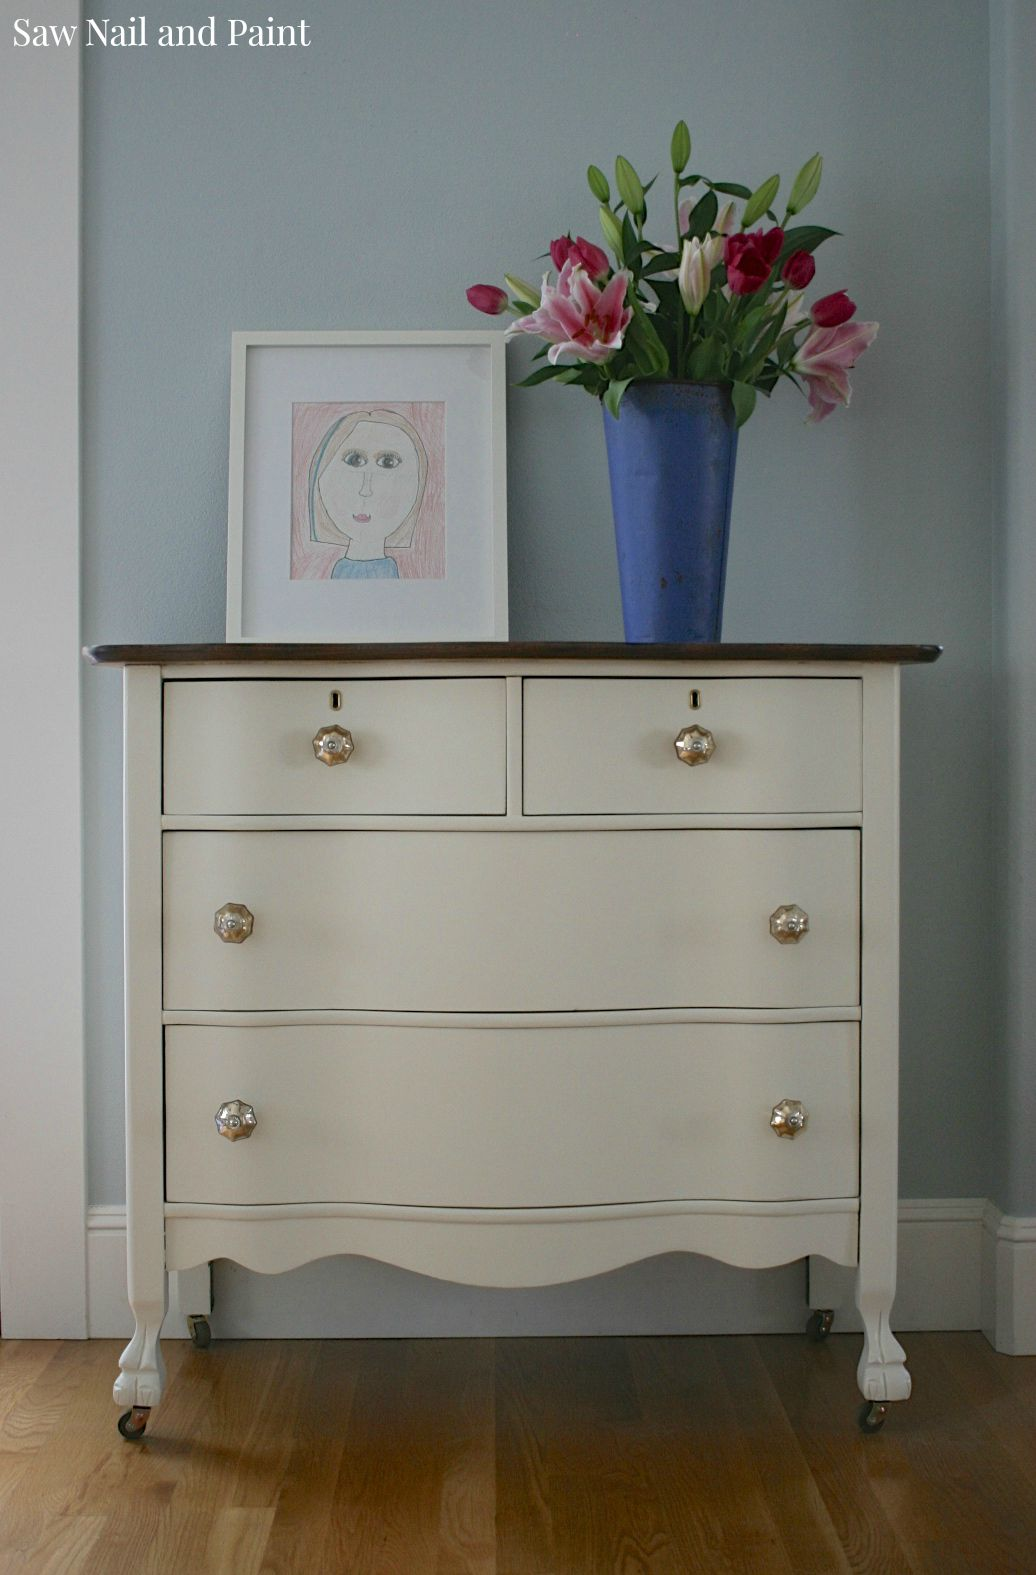 How Much Is A Paint Job >> Serpentine Dresser in Antique White - Saw Nail and Paint